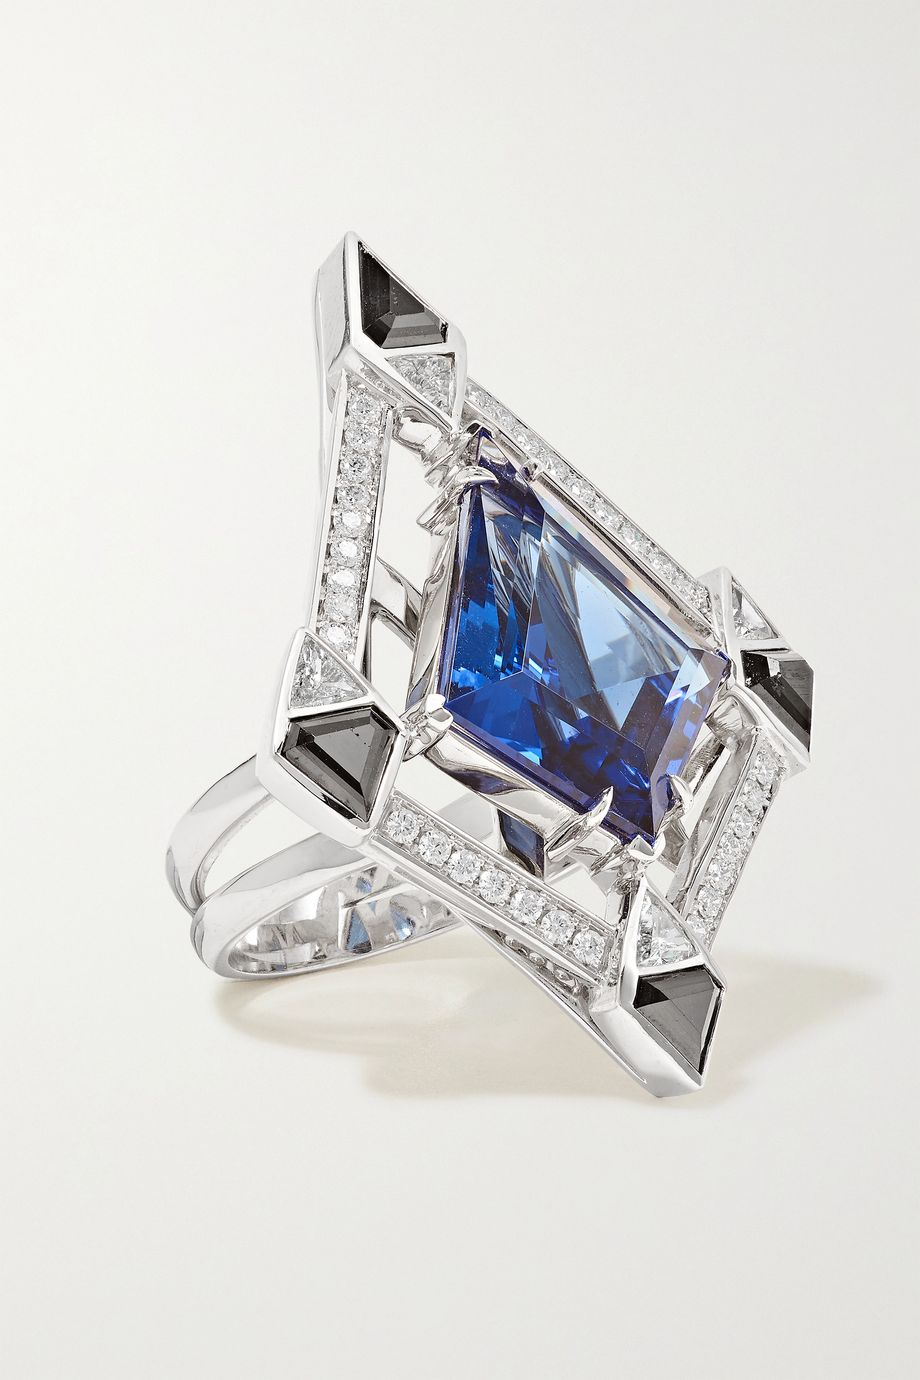 Ara Vartanian 18-karat white gold, tanzanite and diamond ring